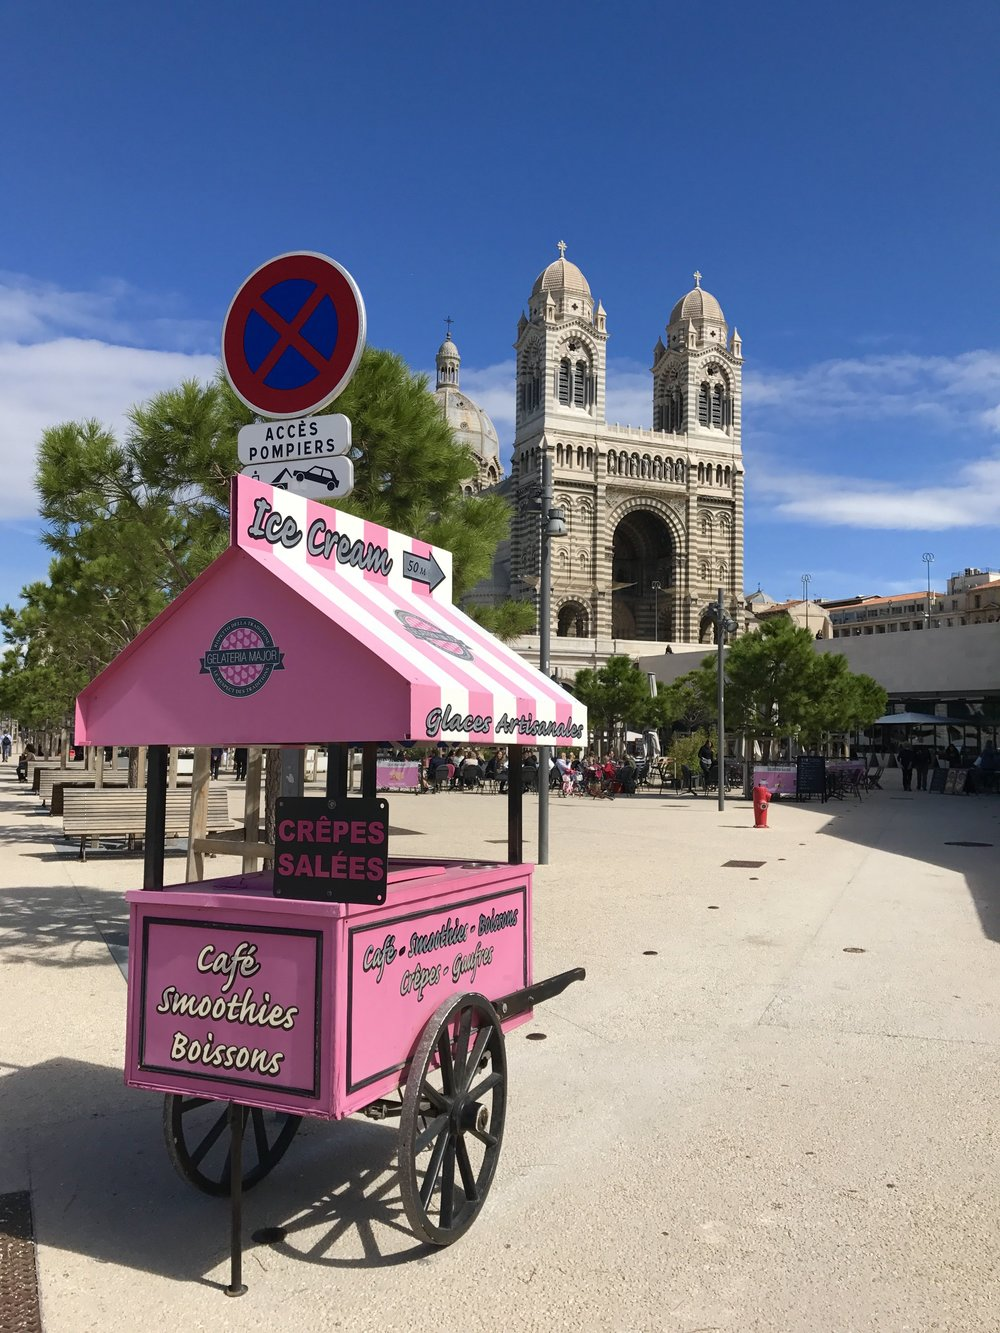 #WineTourist #Marseille - We drove to the cute coastal town of Marseille in Southern France.